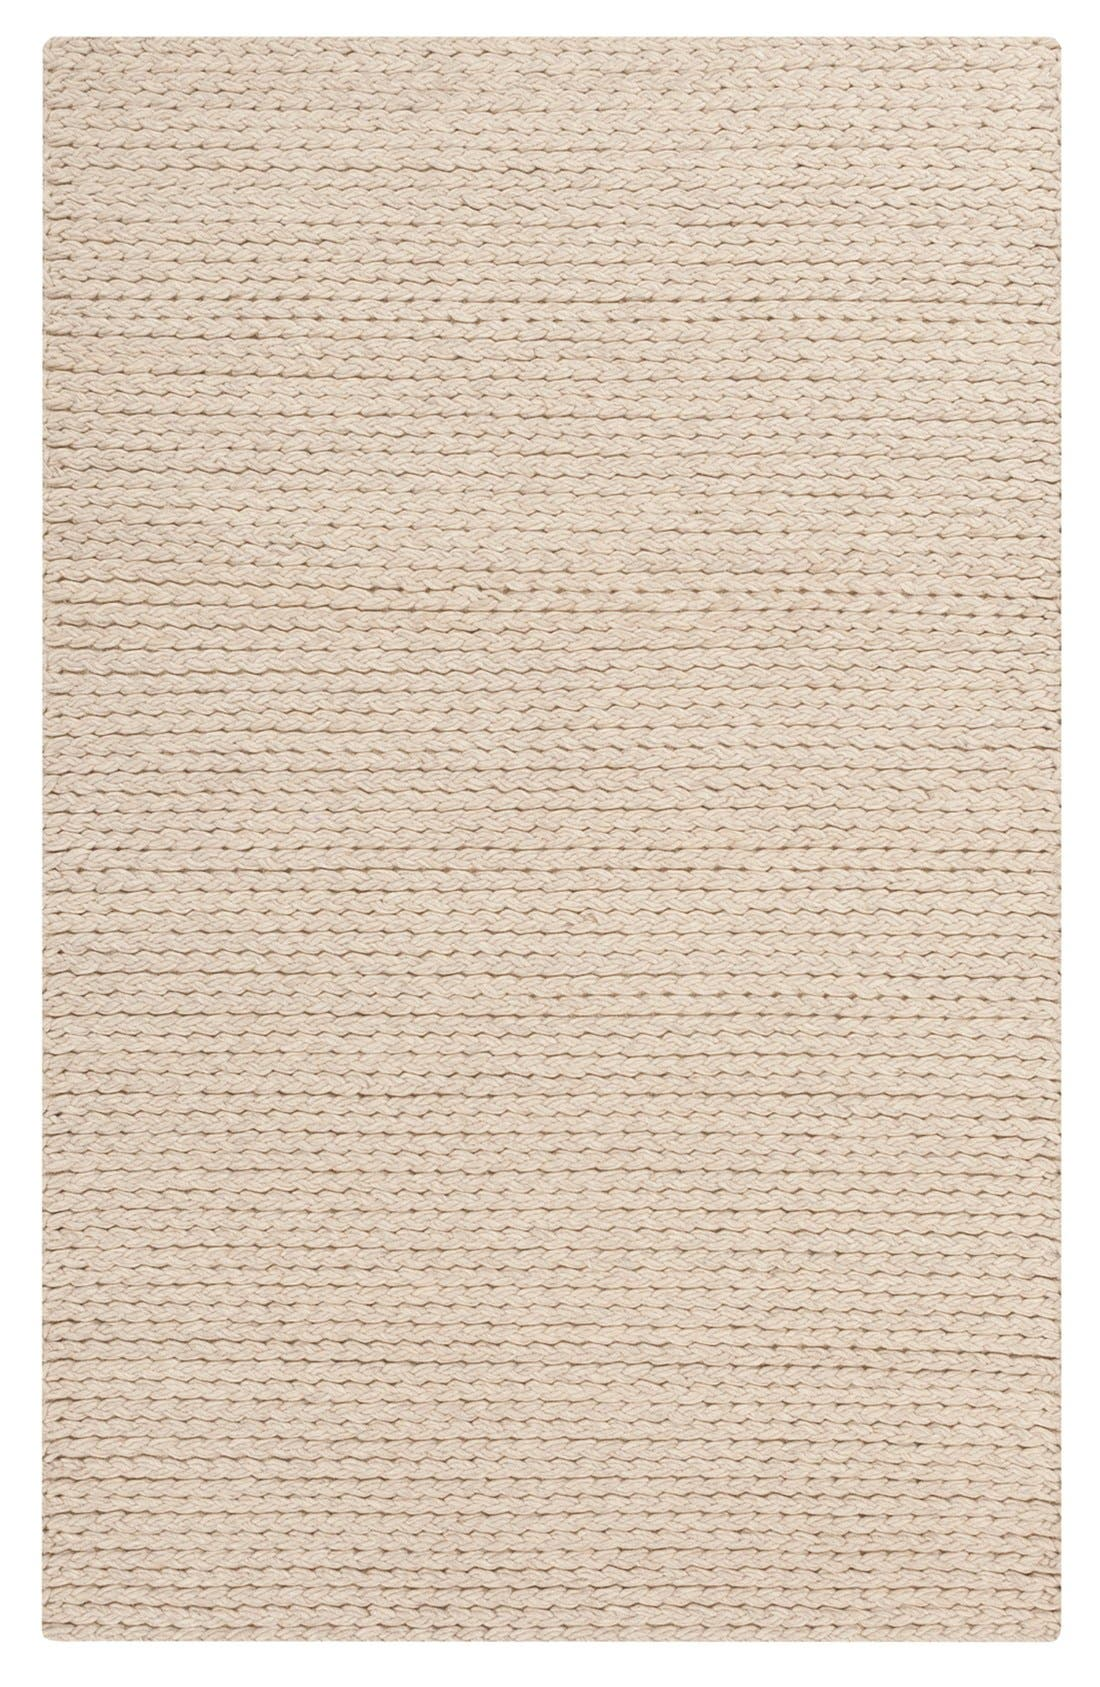 Alternate Image 1 Selected - Surya Home 'Yukon' Hand Woven Wool Rug